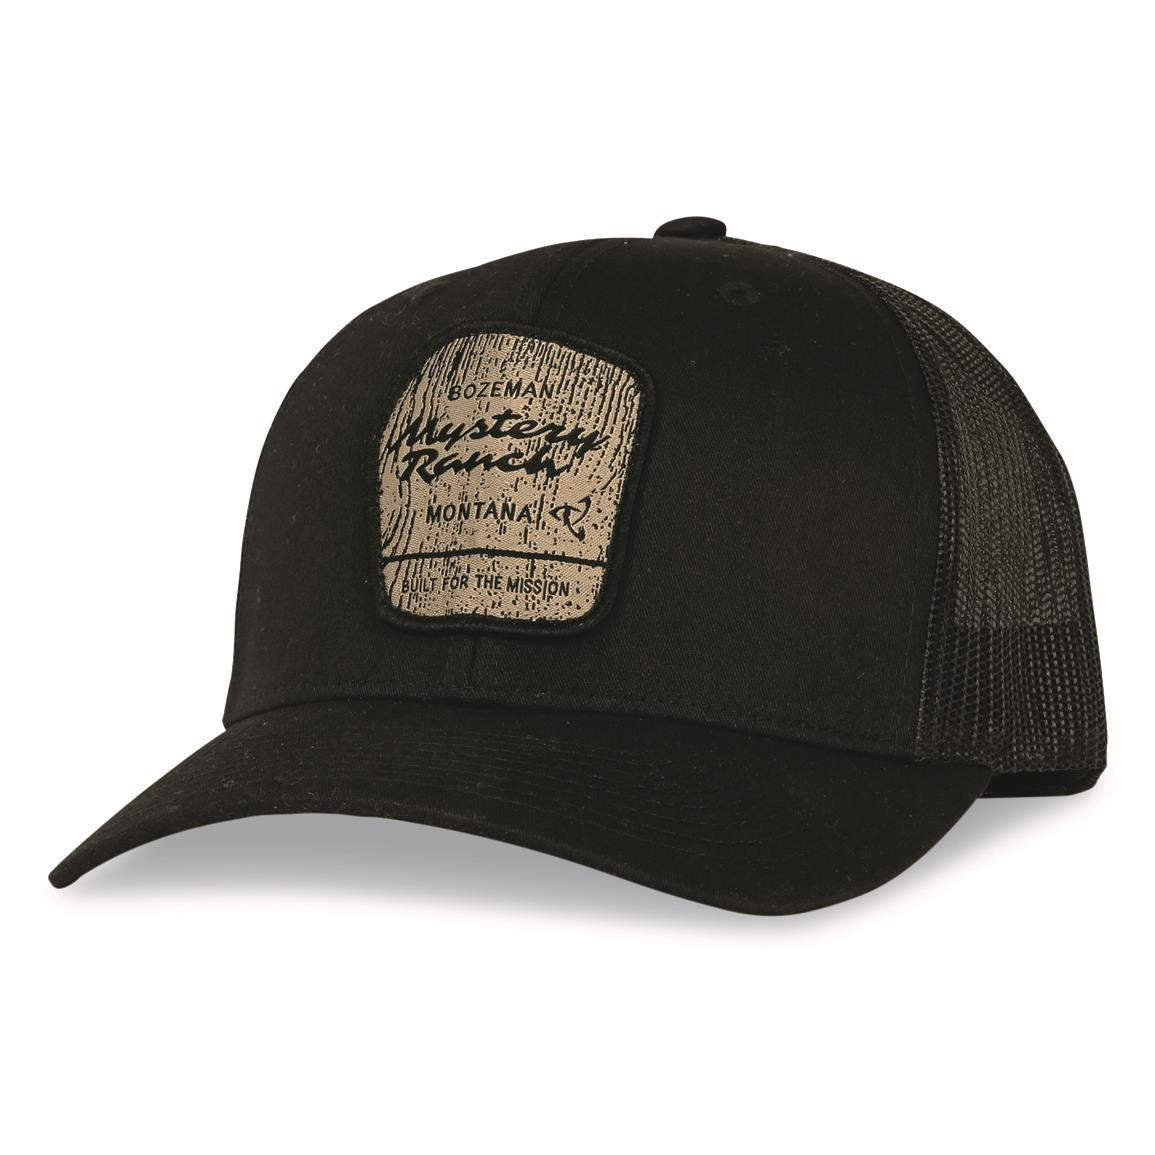 Mystery Ranch Wilderness Trucker Cap, Black